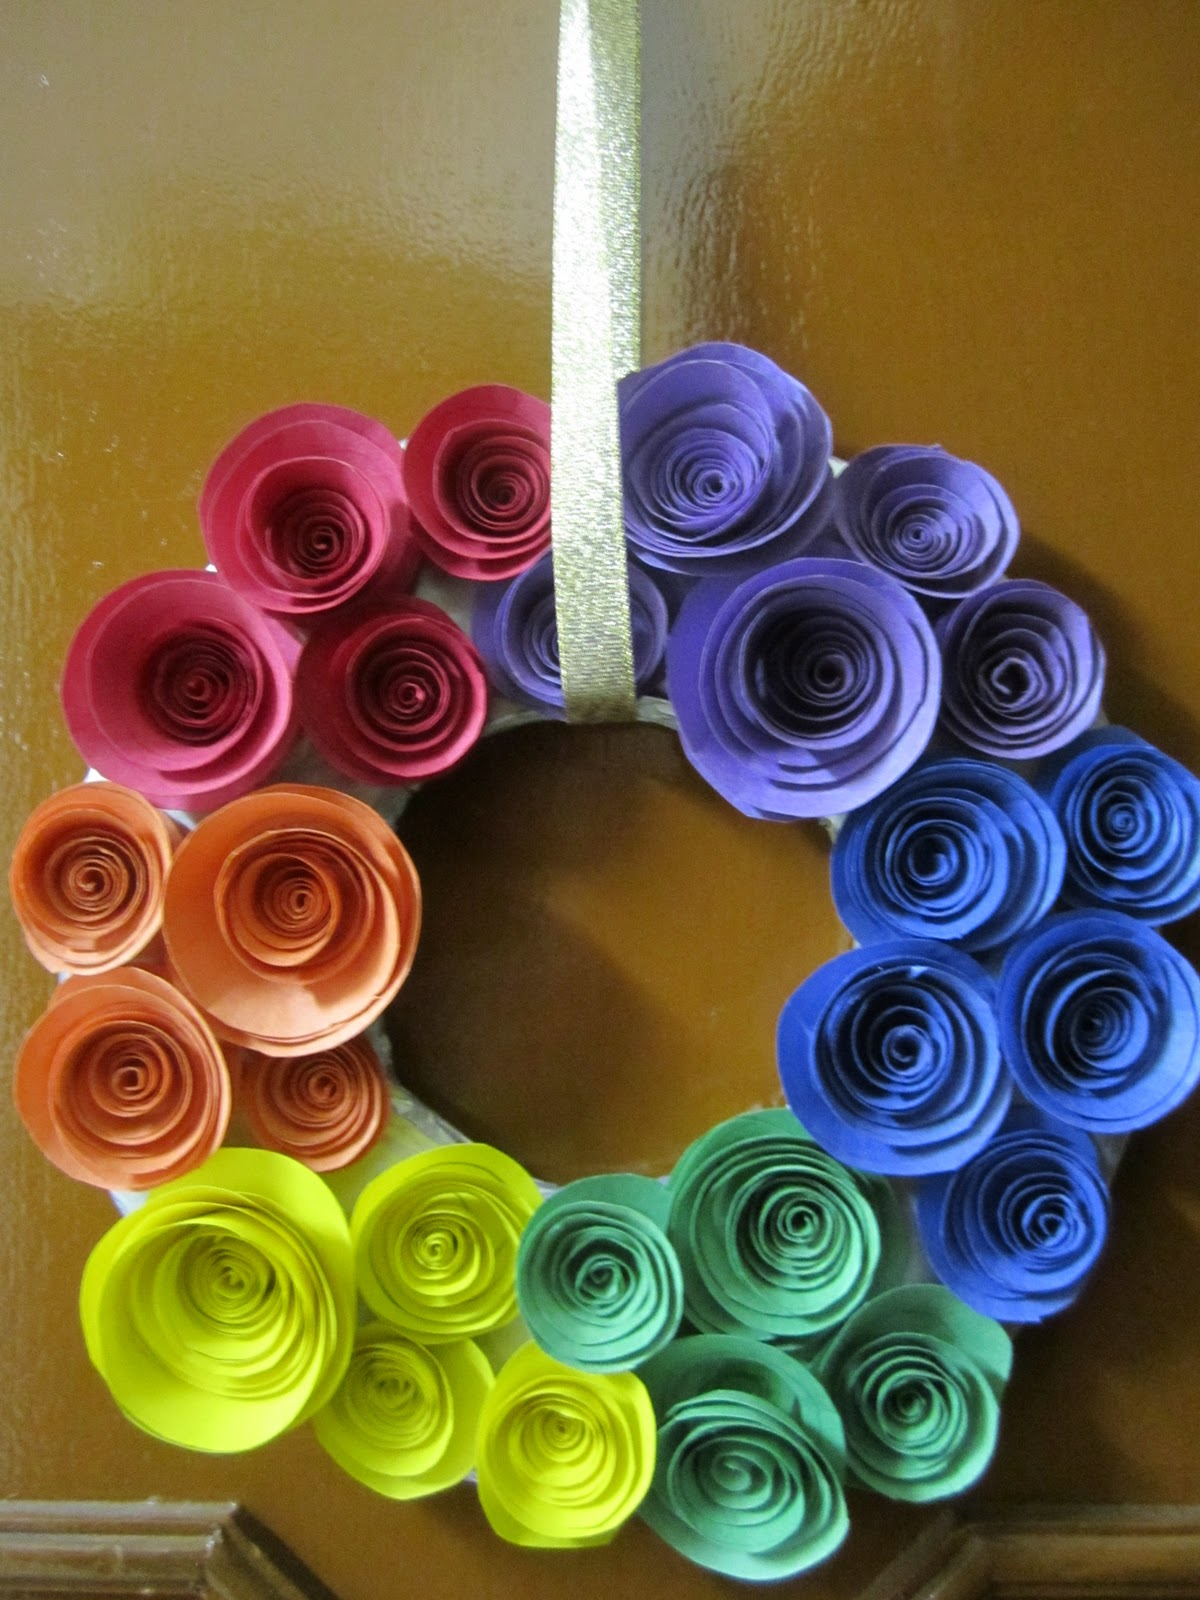 Bee 39 s and san 39 s diy rainbow coloured paper rose wreath for Diy colored paper